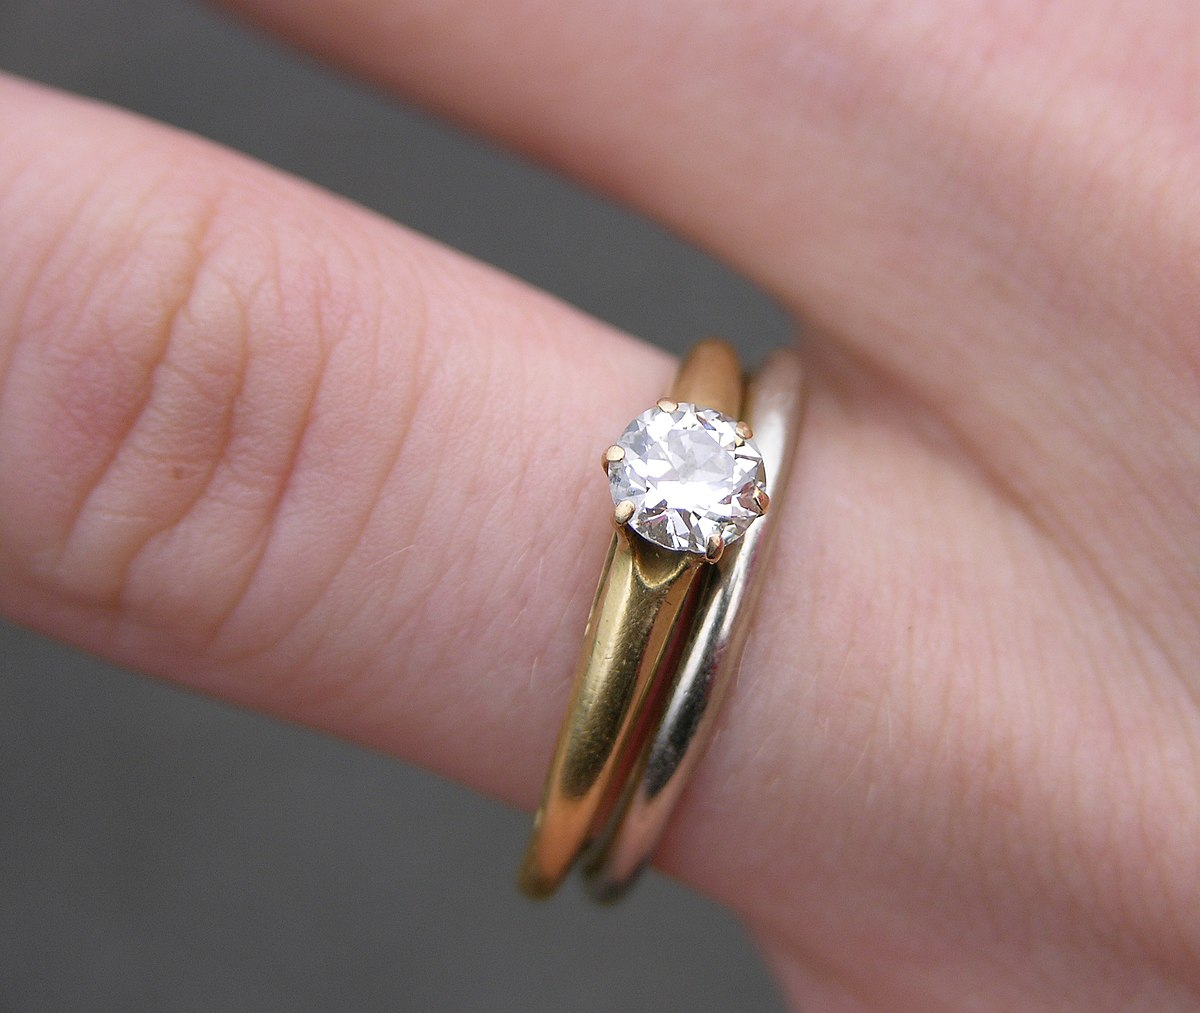 engagement ring wikipedia - Wedding And Engagement Rings